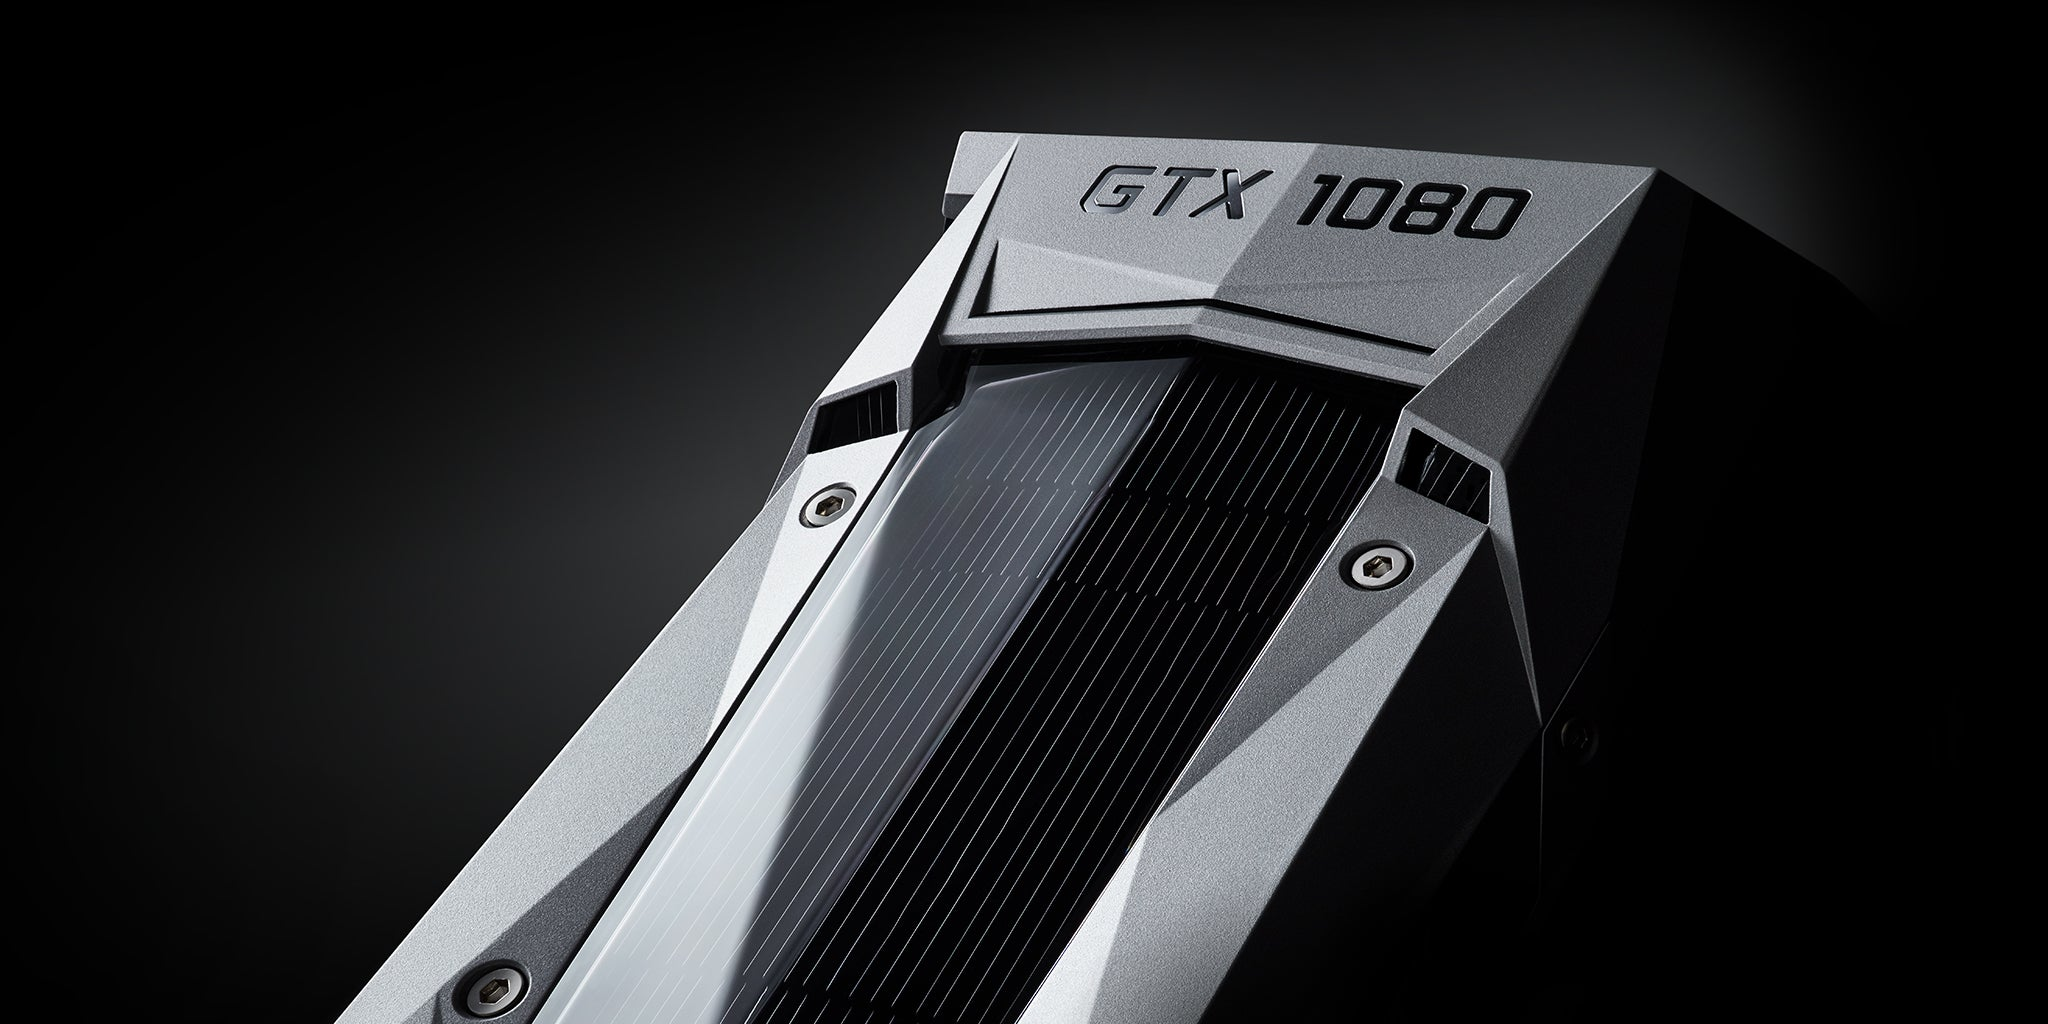 Nvidia's Latest 'Most Advanced Graphics Card' Is Faster And Cheaper Than The Last One